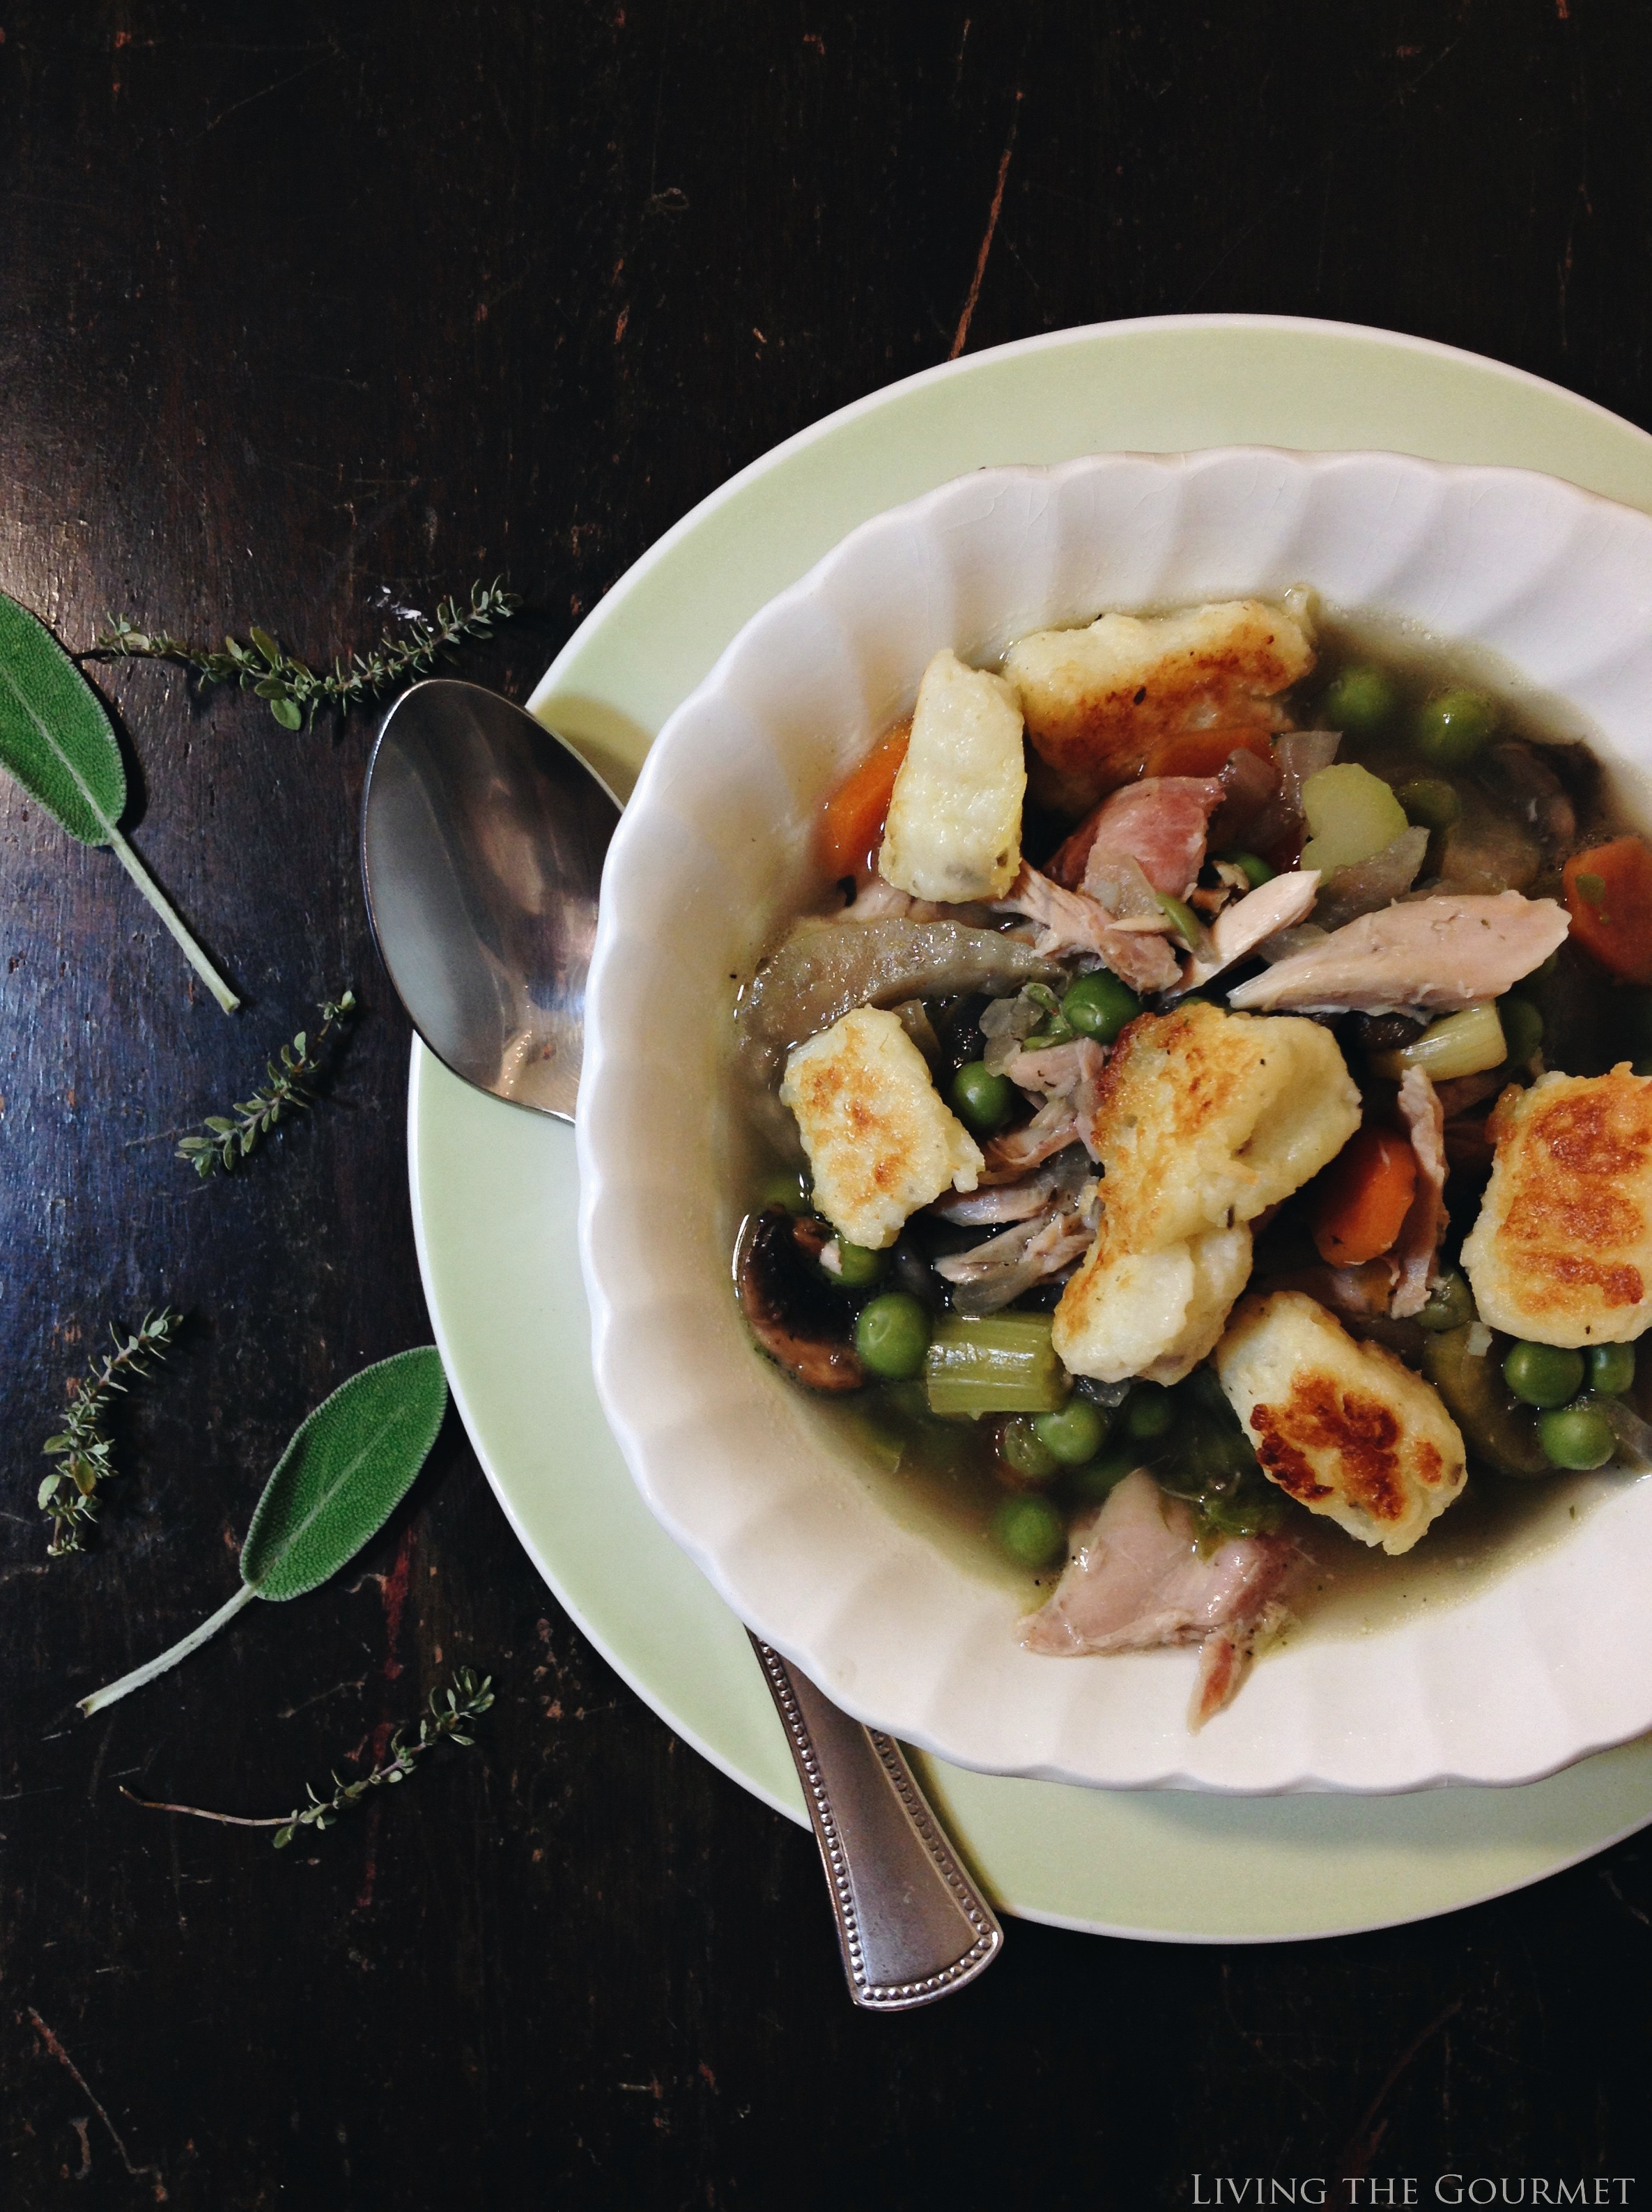 Living the Gourmet: Gnocchi and Chicken Soup